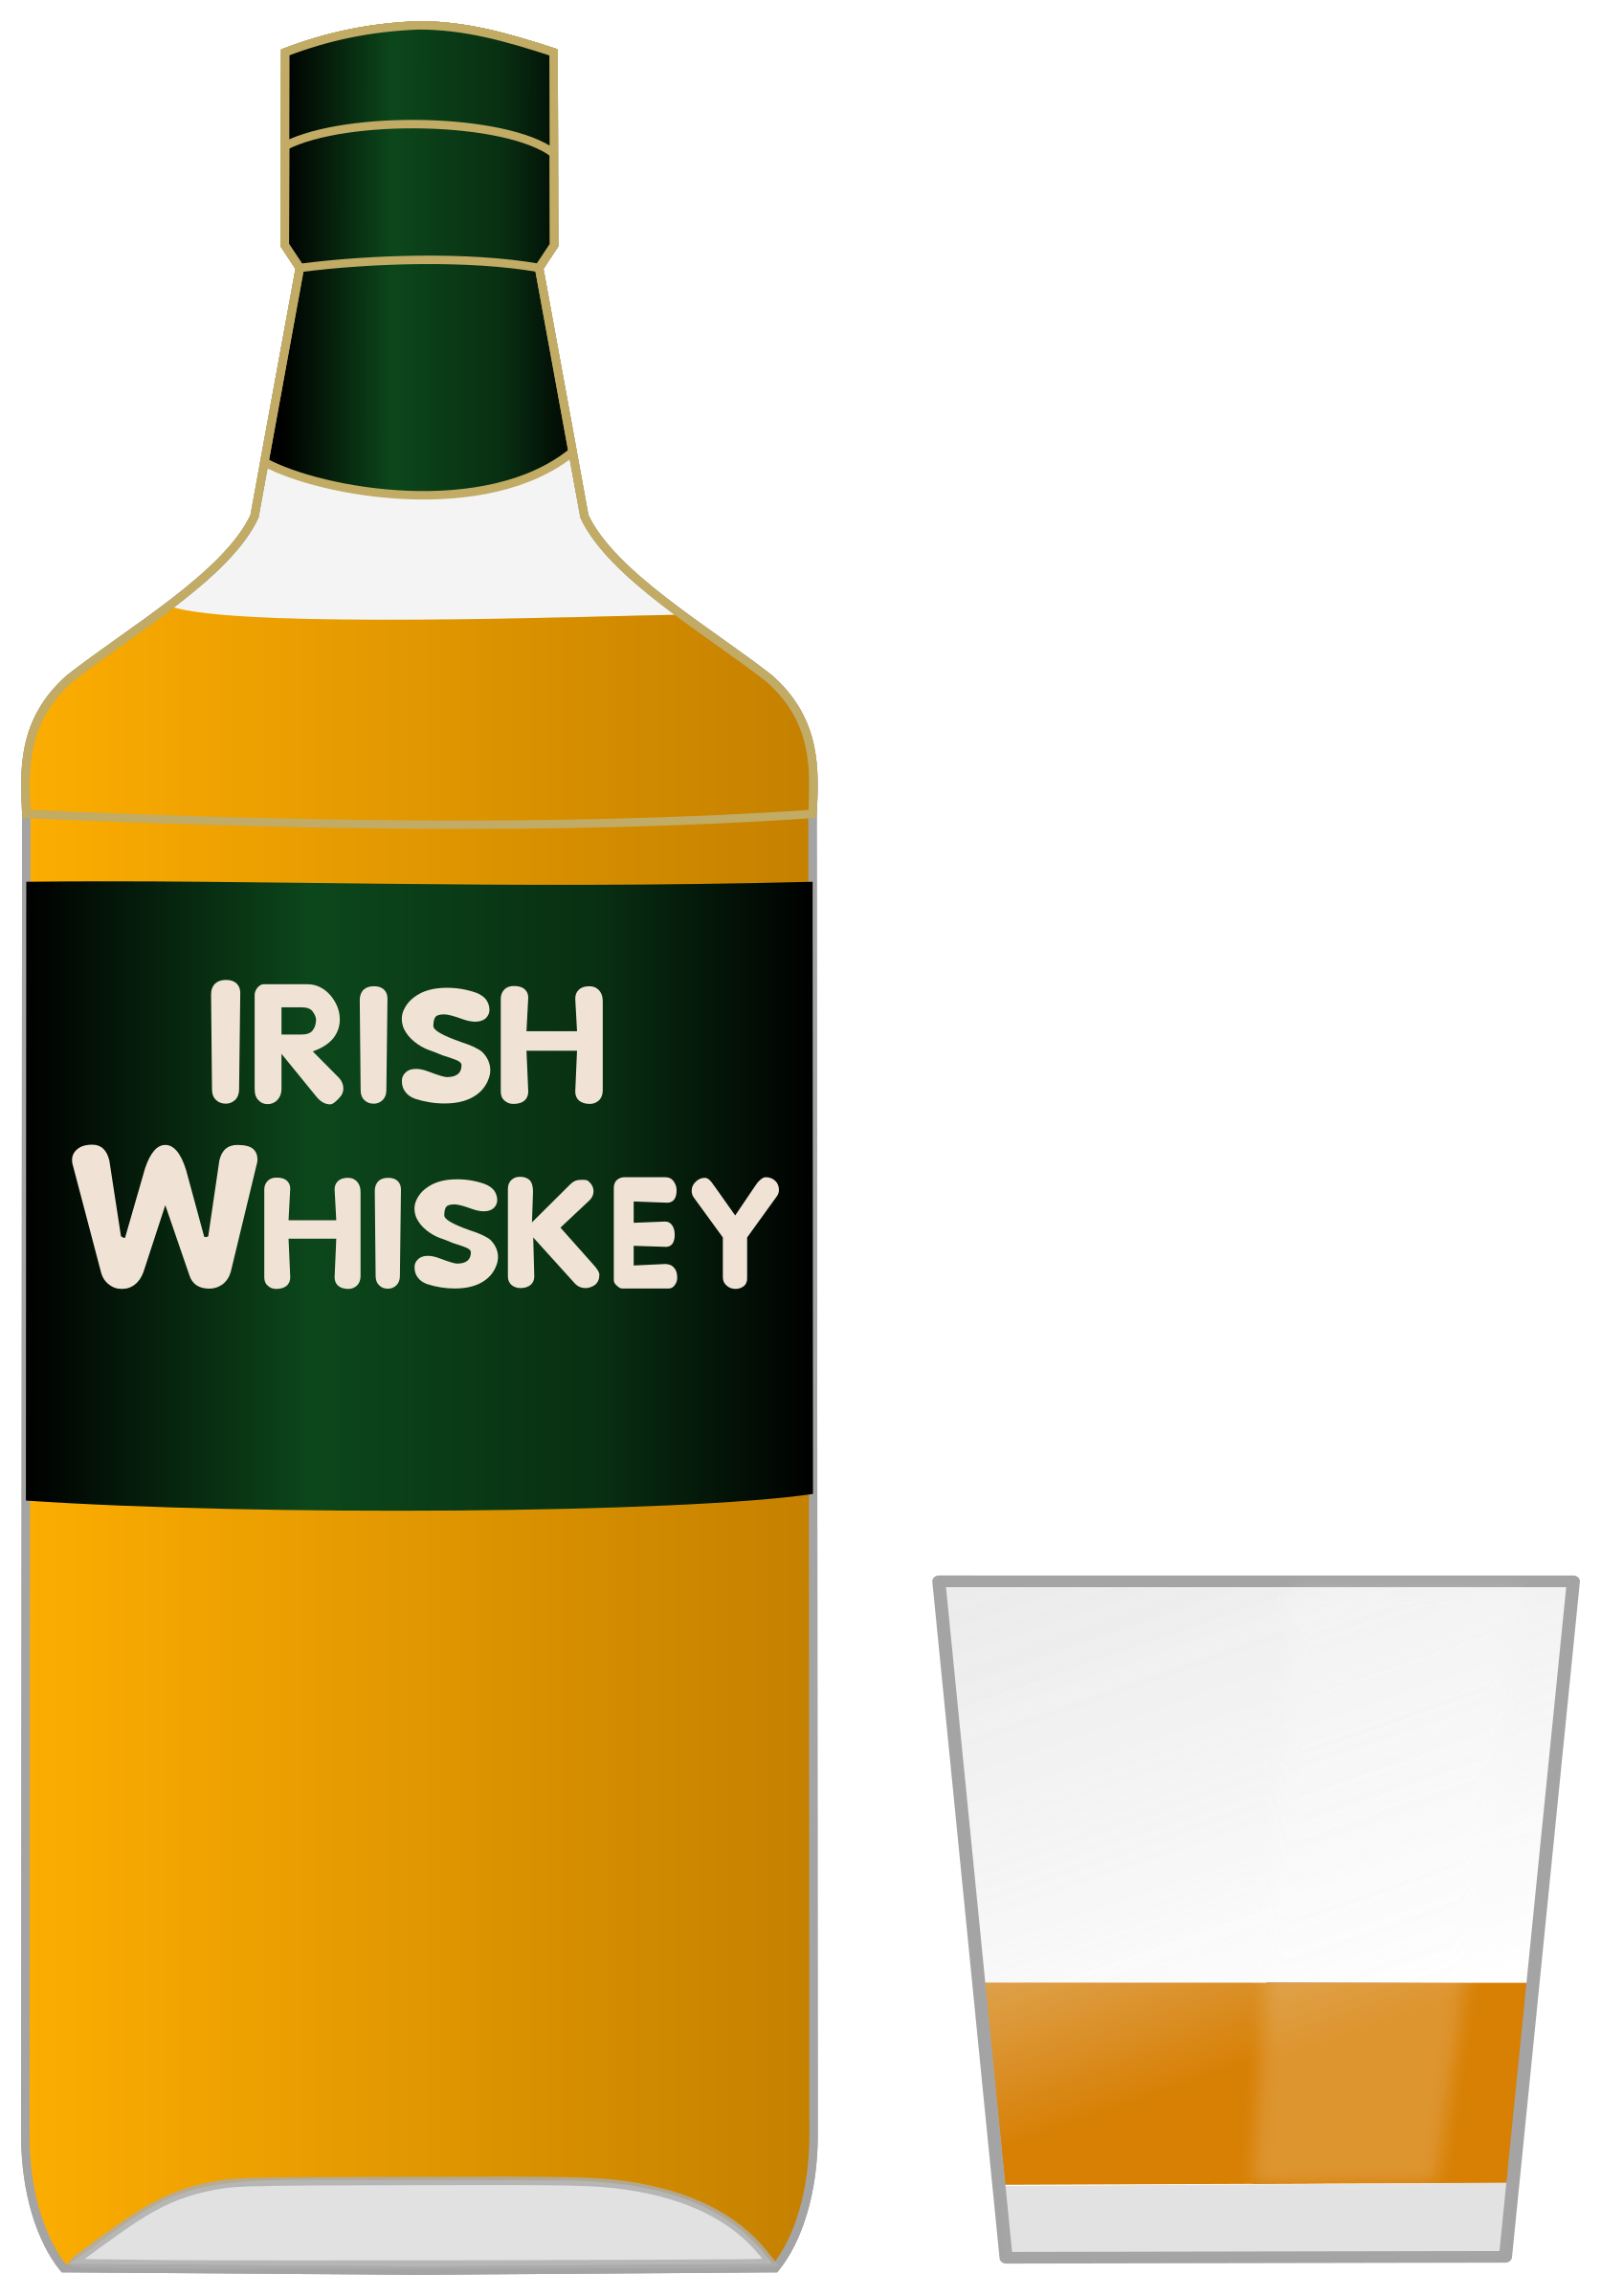 Bottle of Irish whiskey and a glass by Juhele